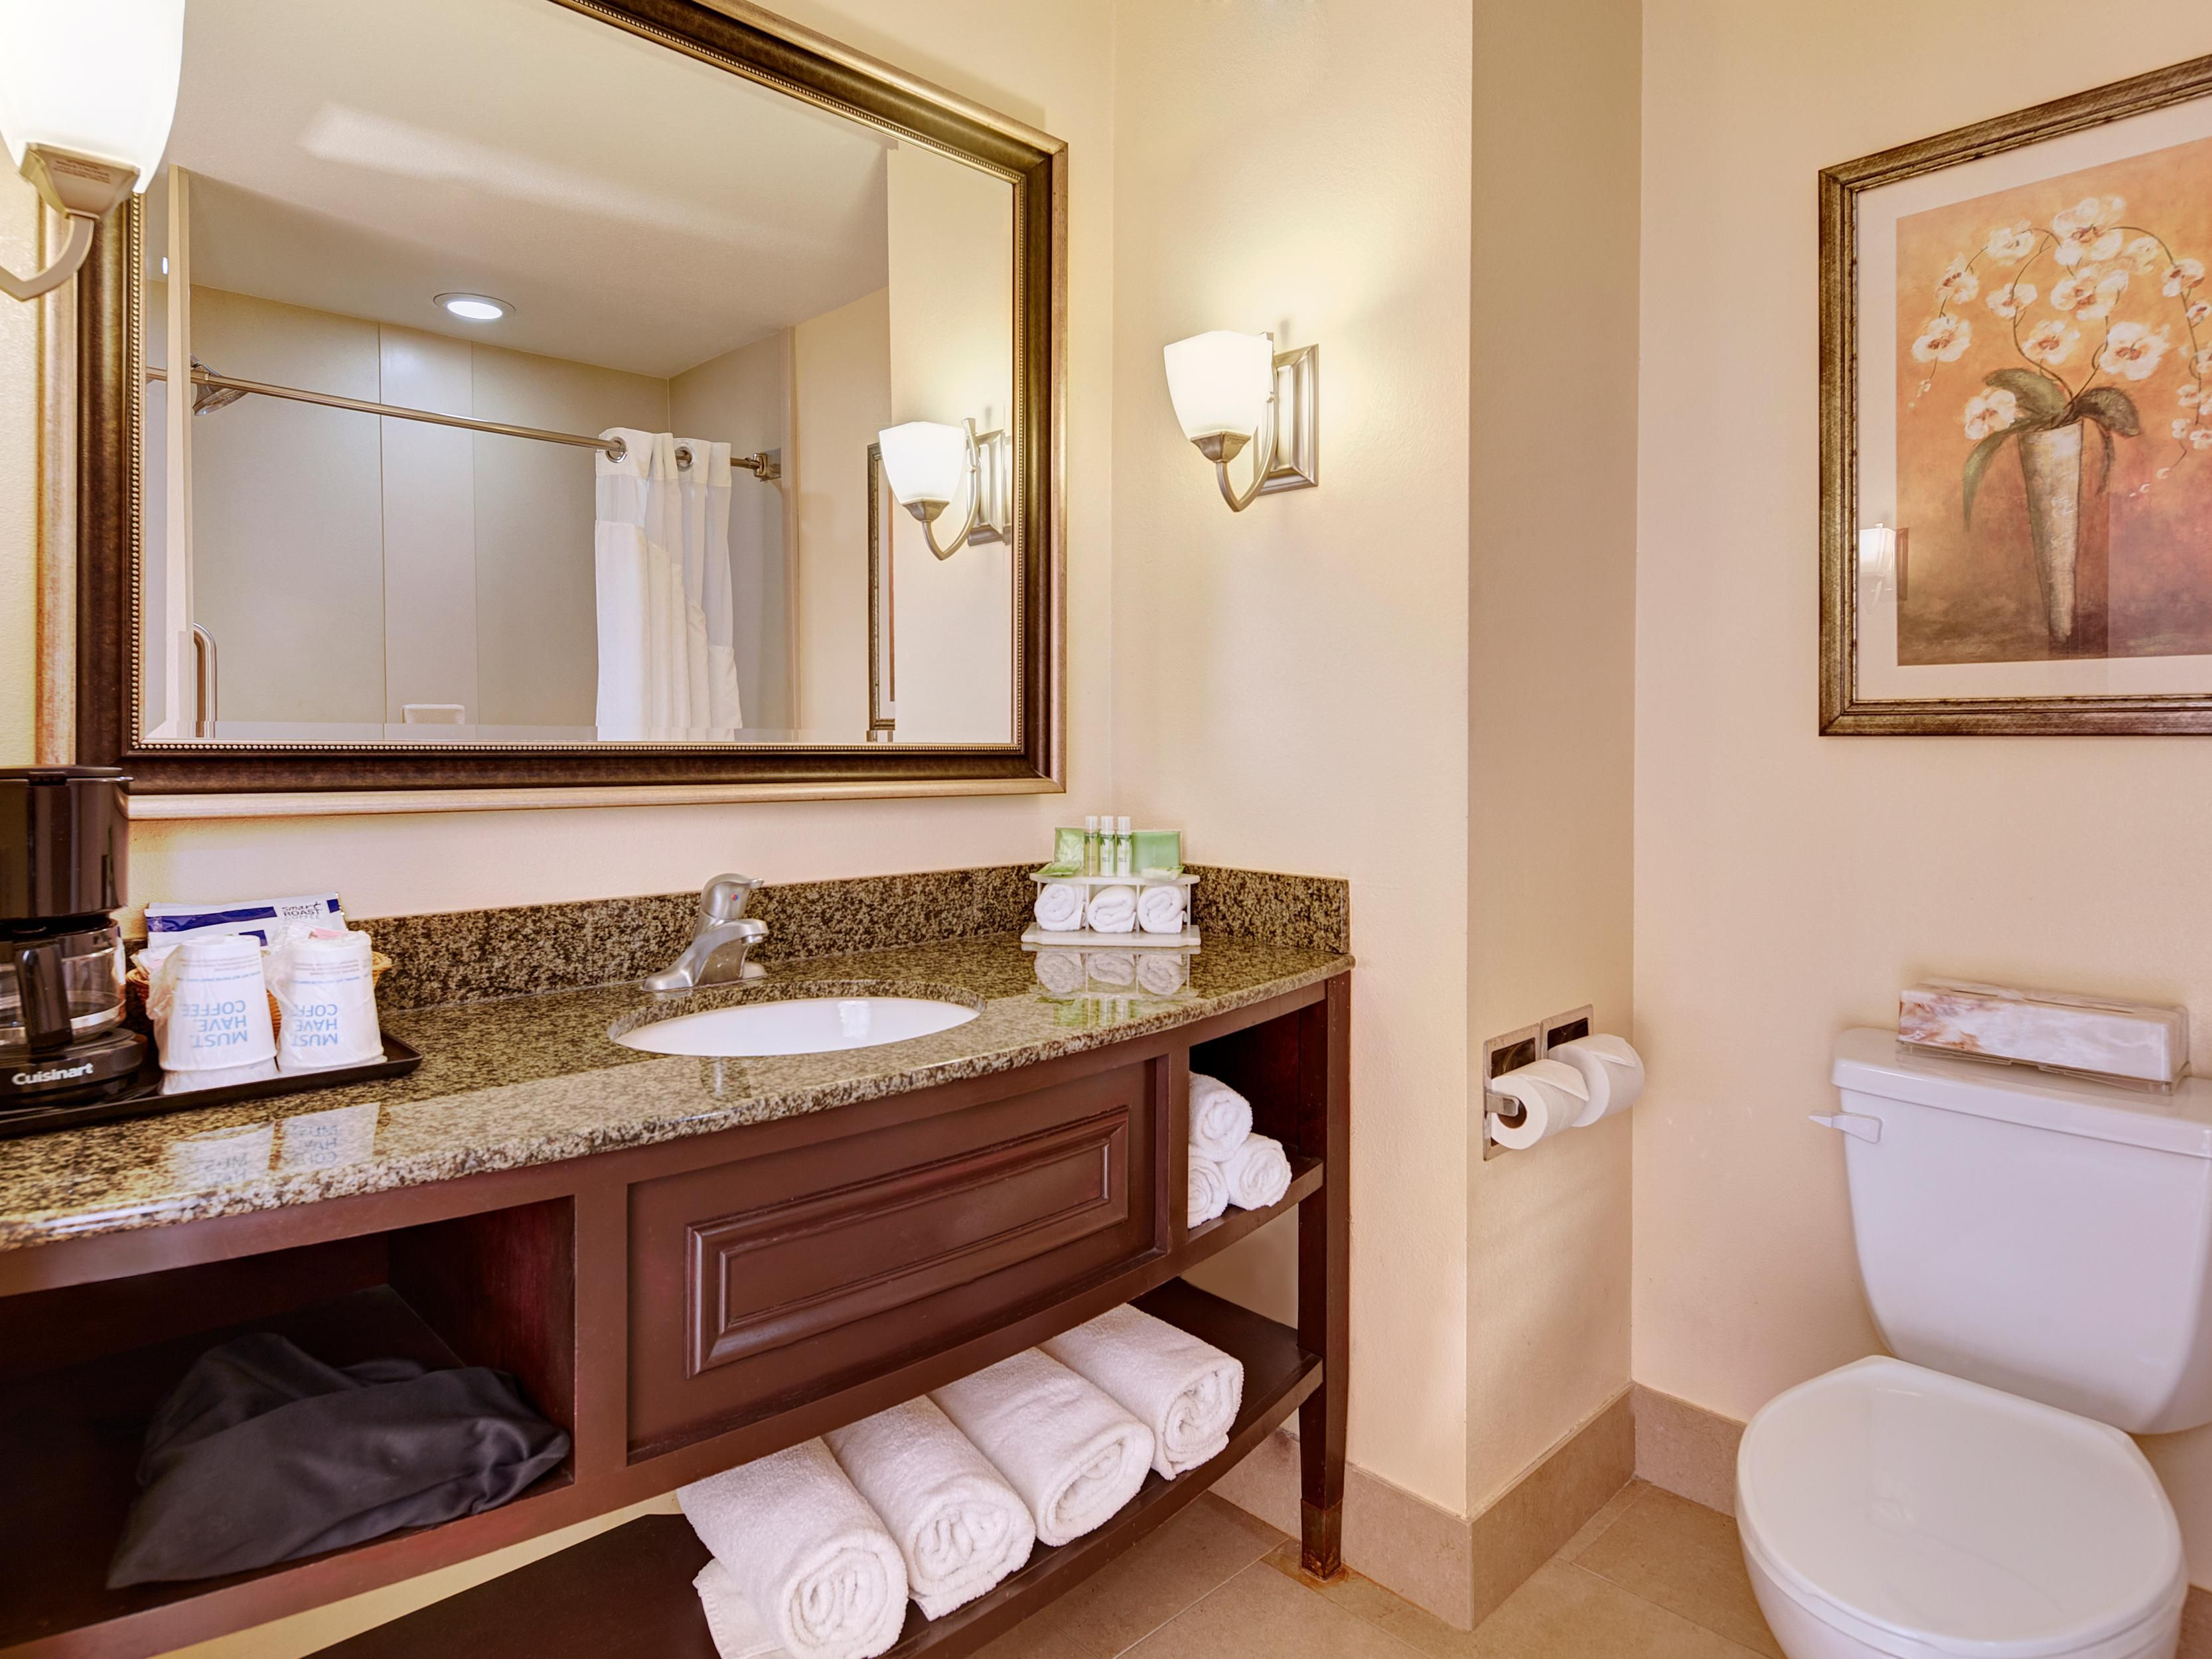 All of our bathrooms feature granite countertops.